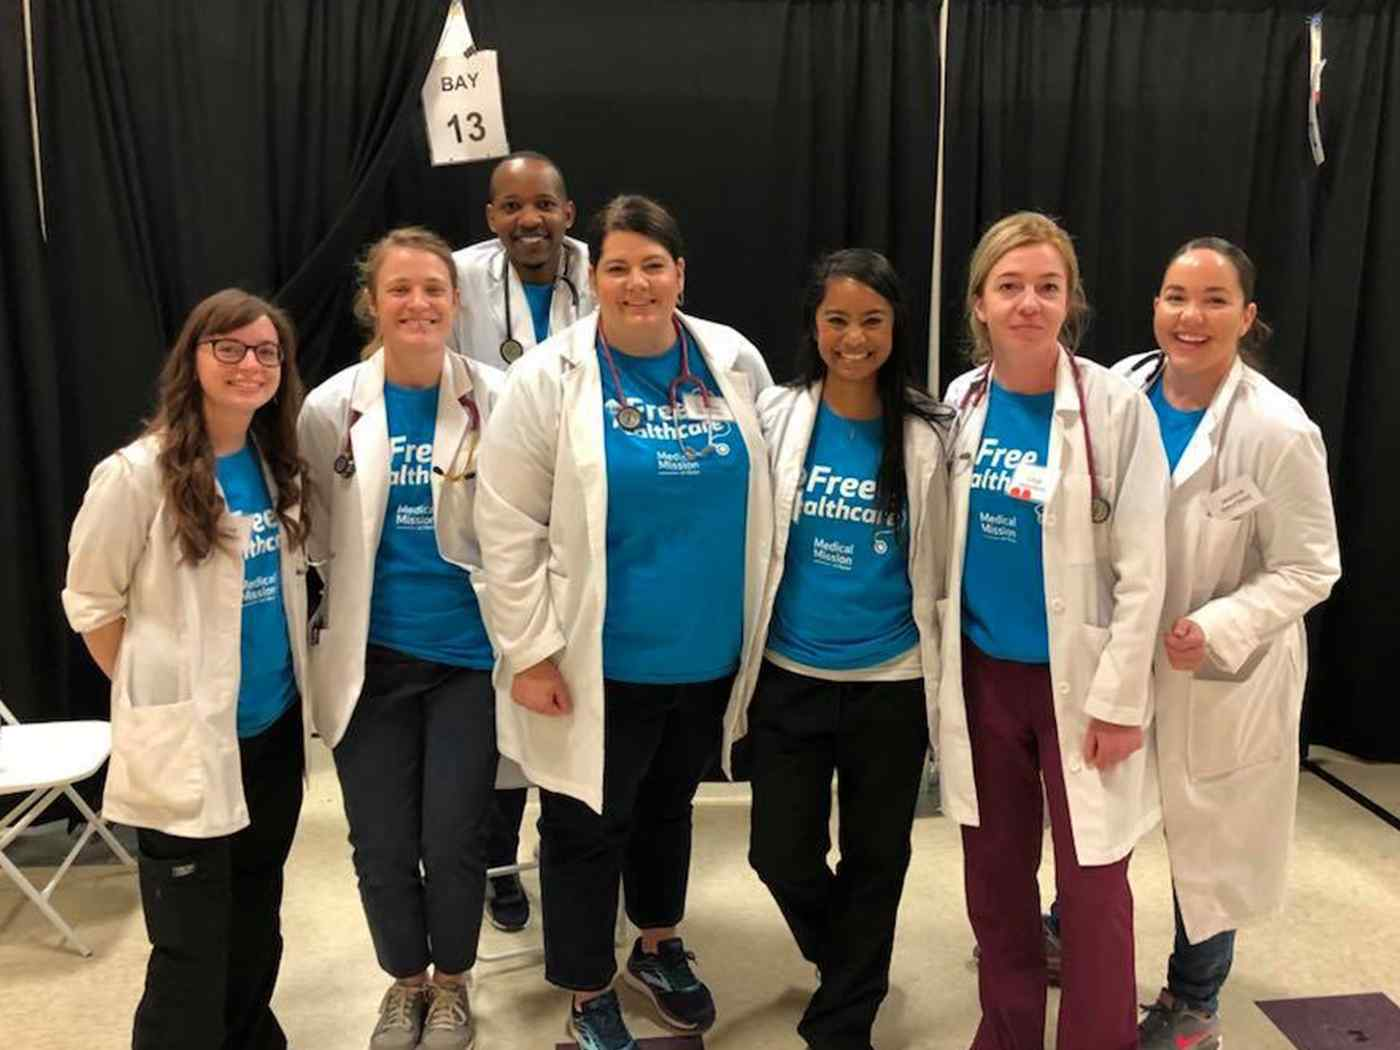 Students in the School of Nursing get hands-on experience providing a day of free health care to patients with little or no health insurance.